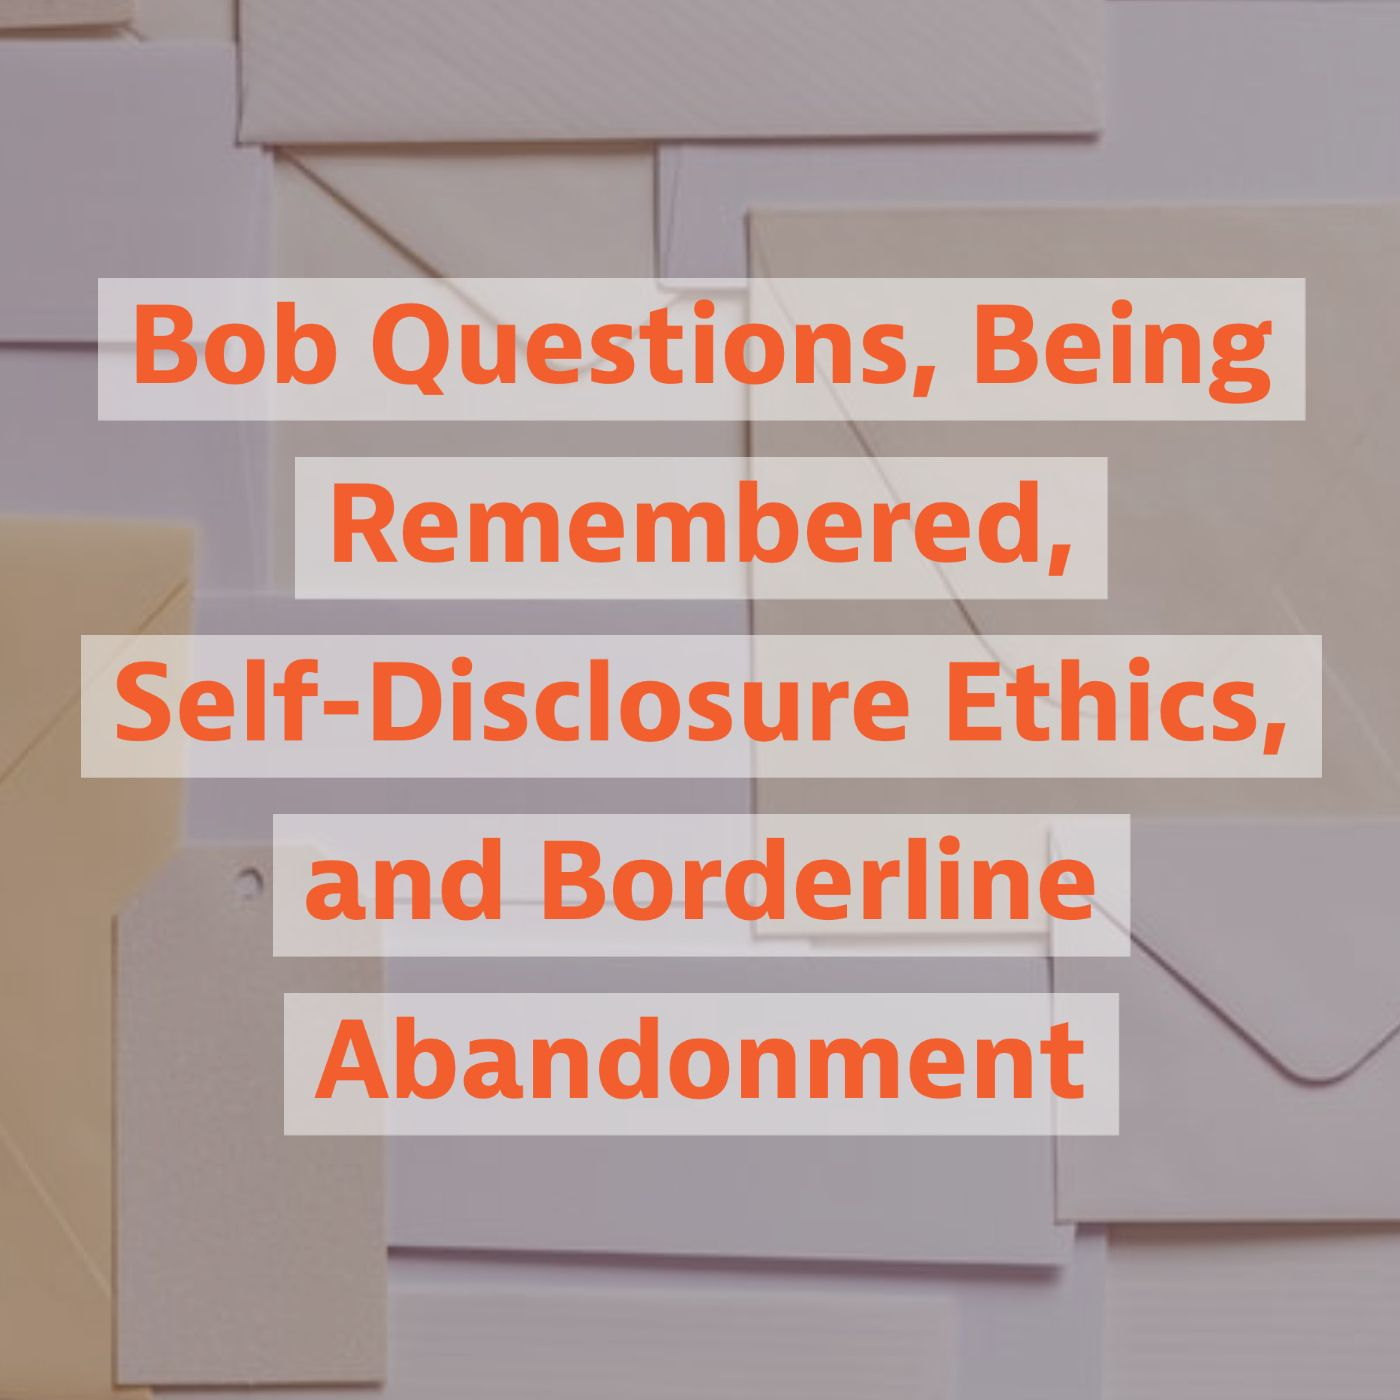 Bob Questions, Being Remembered, Self-Disclosure Ethics, and Borderline Abandonment